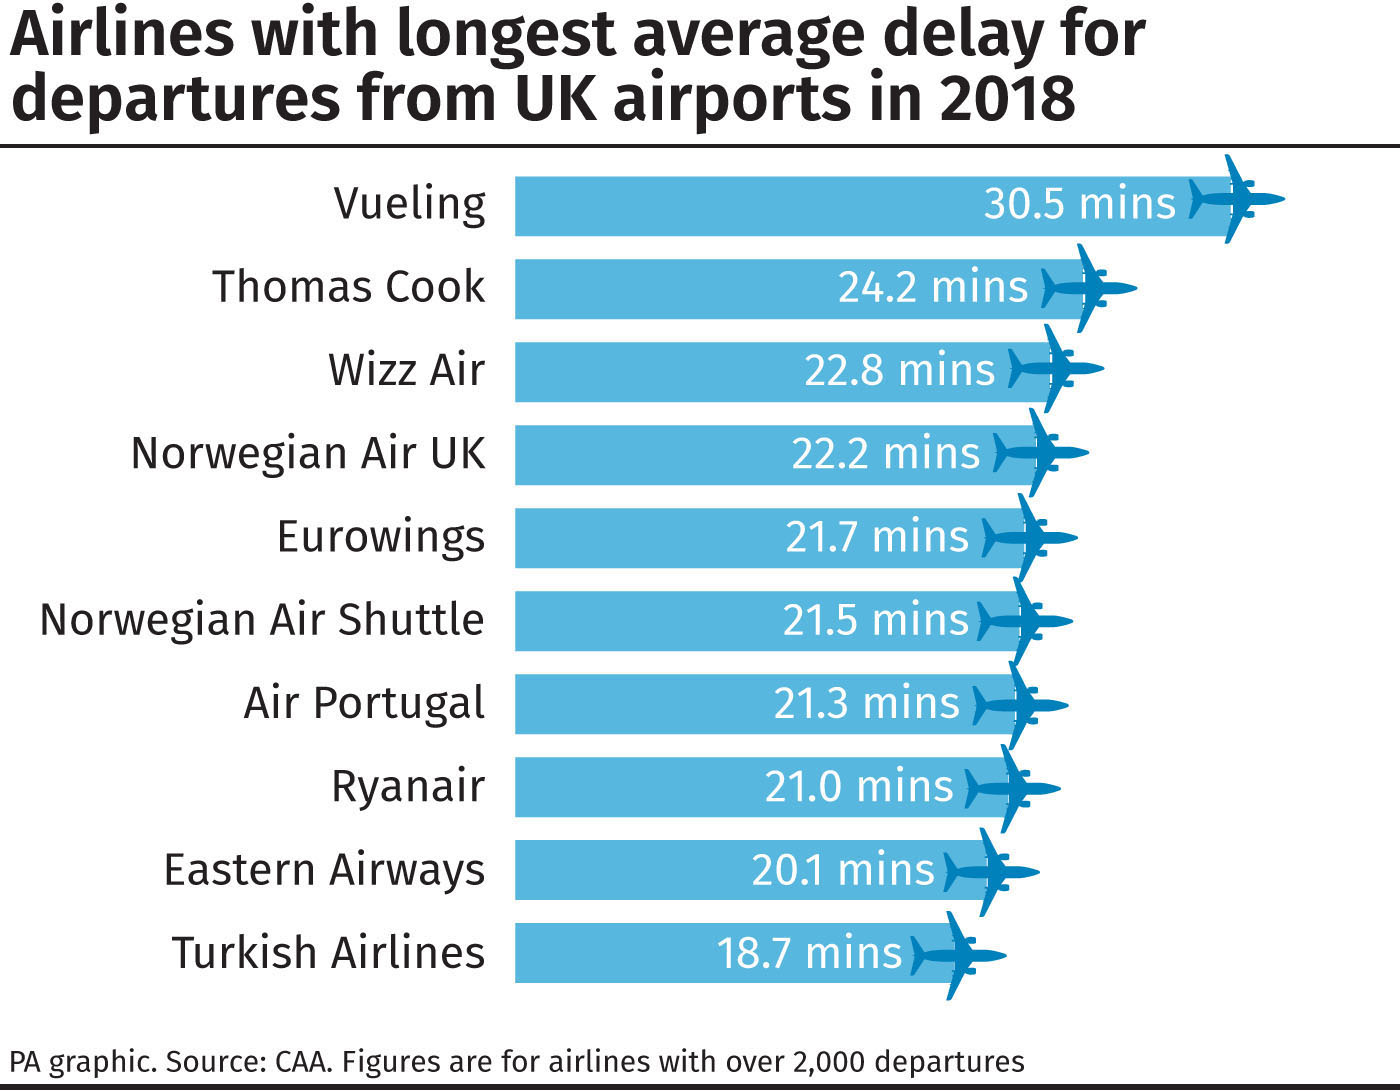 Airlines with longest average delay for departures from UK airports in 2018